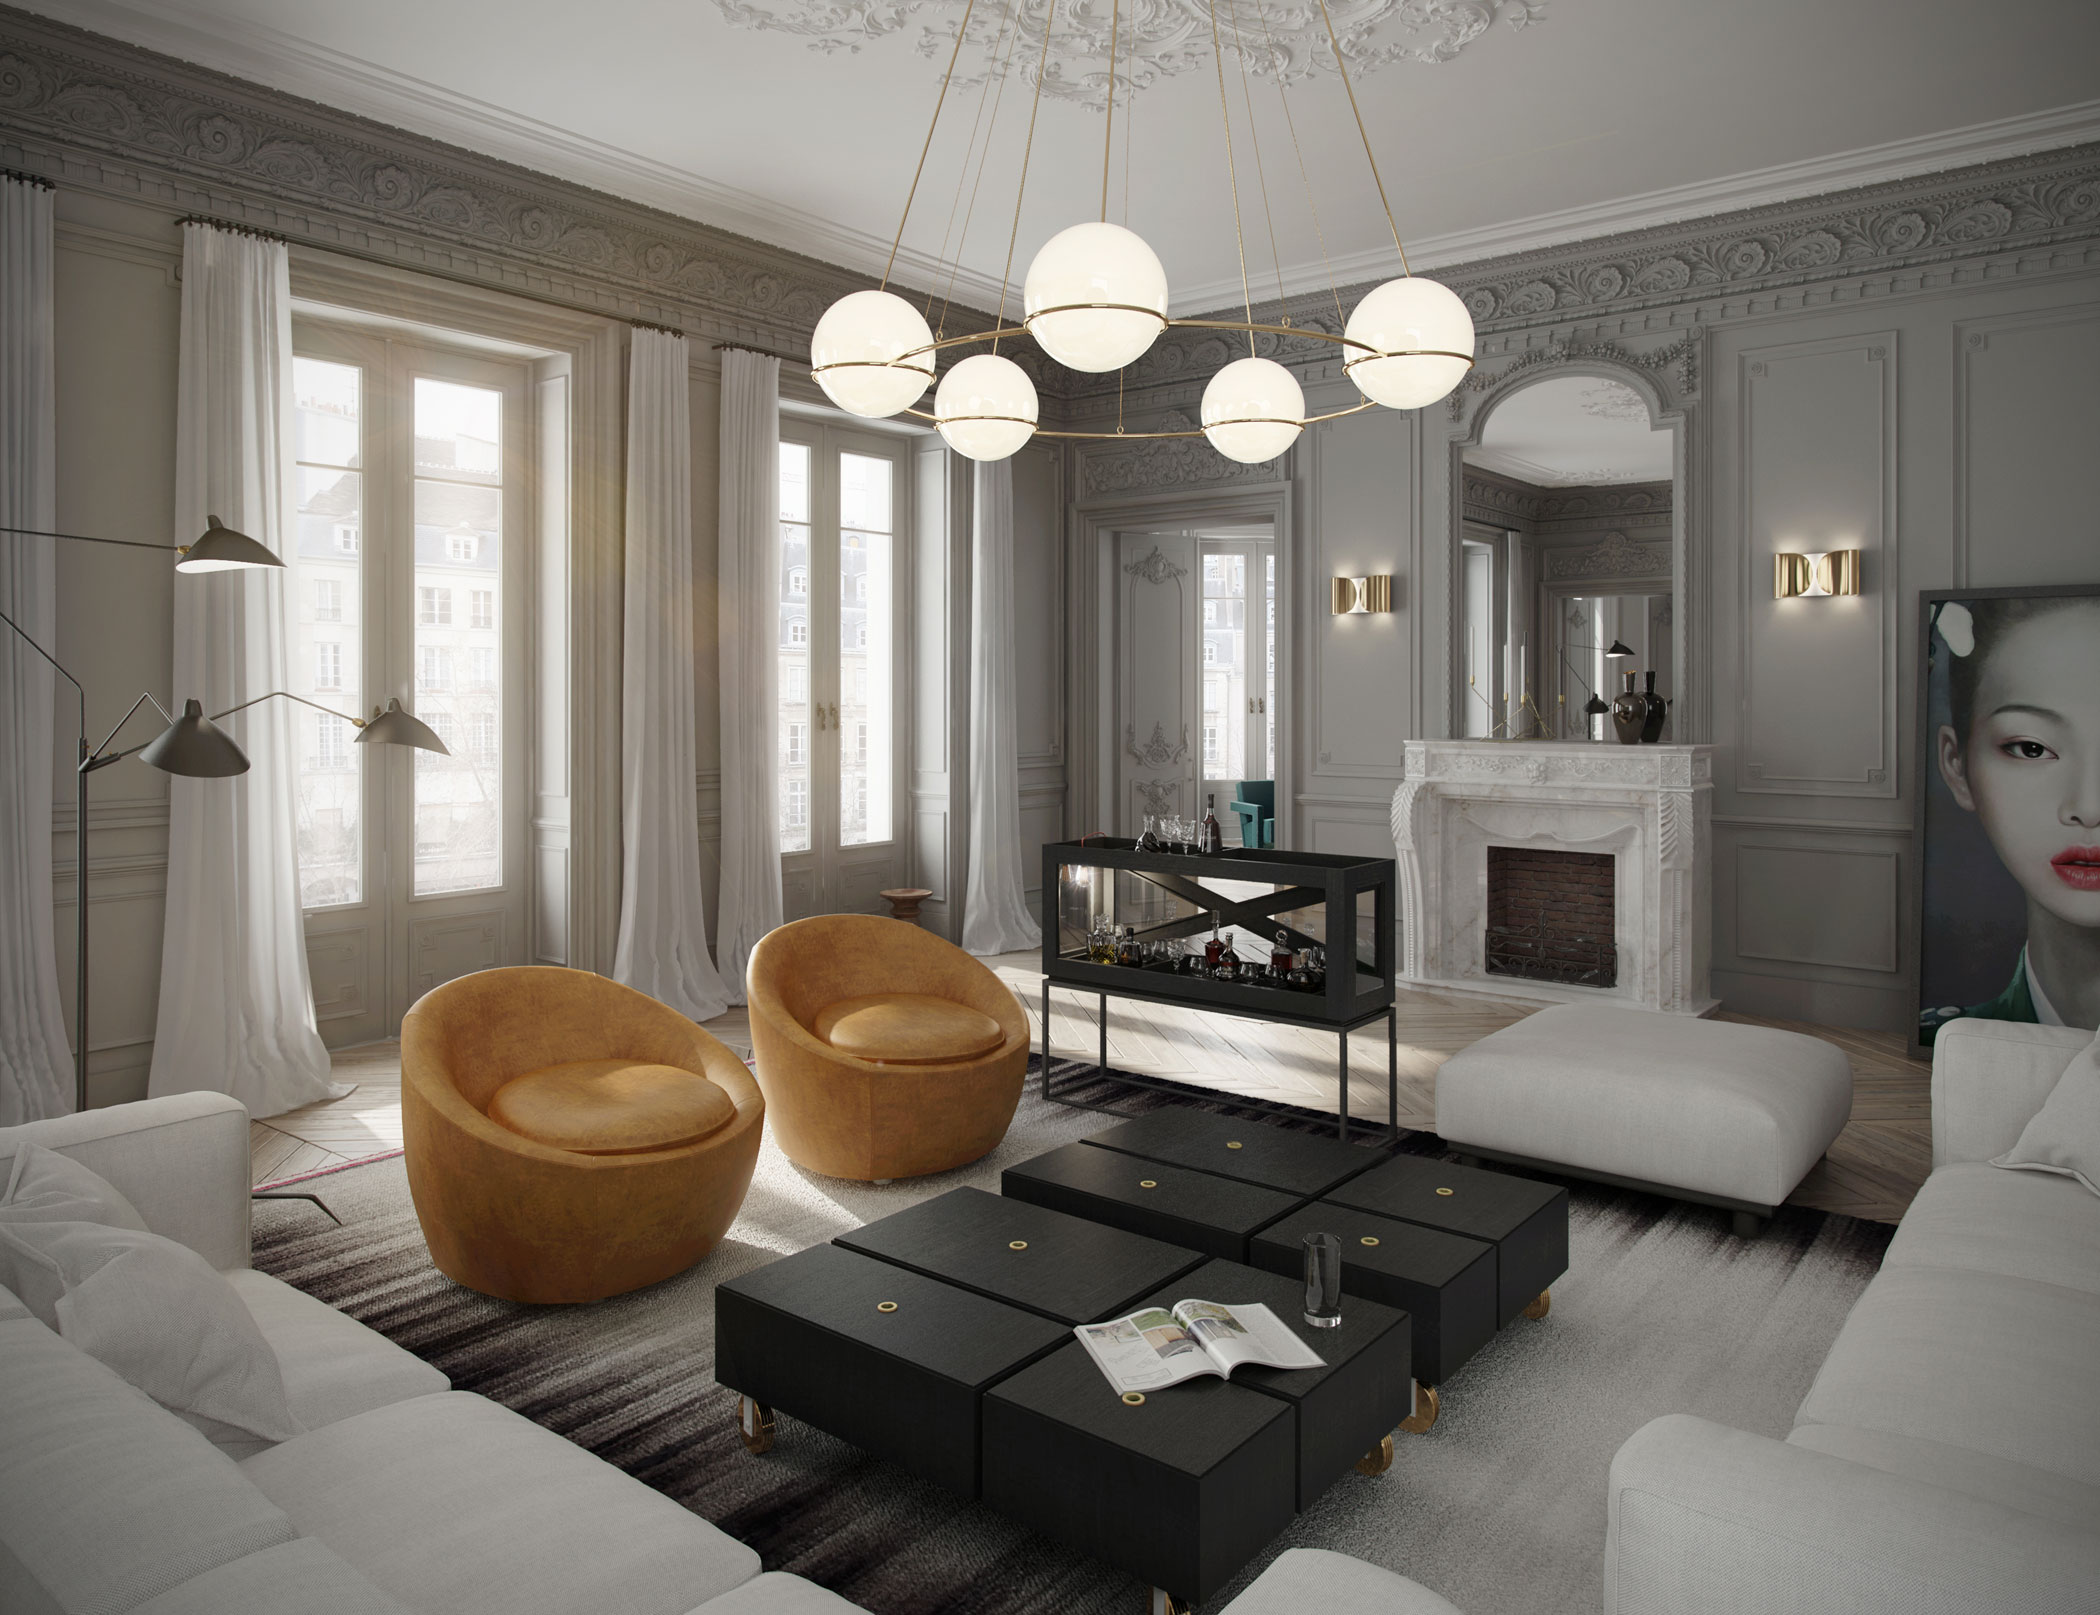 London Based Art Buro Designs A Sophisticated Apartment In